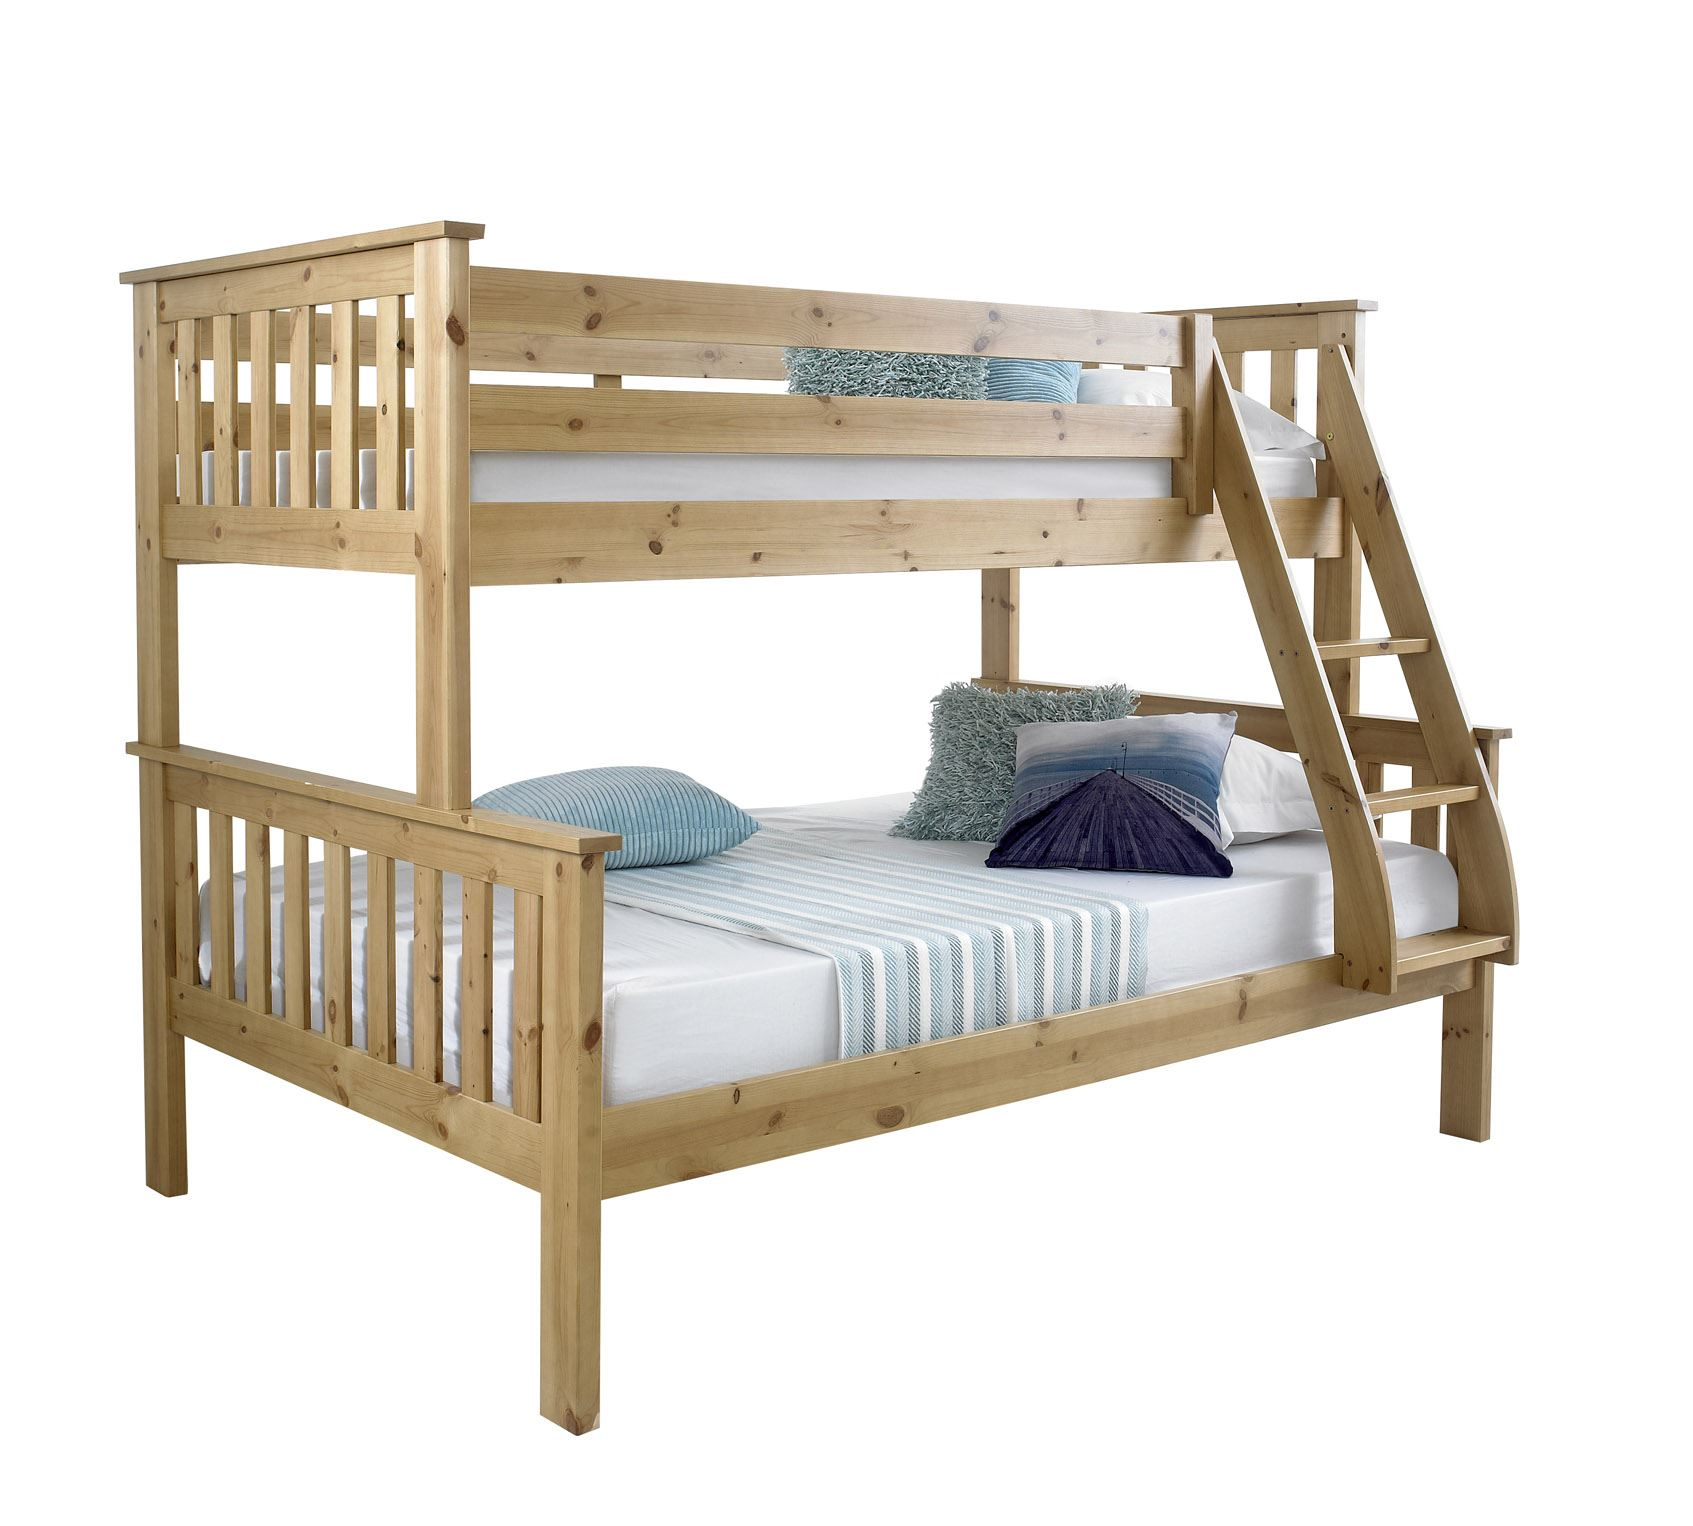 Bluemoon beds 4ft atlantis triple sleeper bunk bed solid for Bunk beds with mattresses included